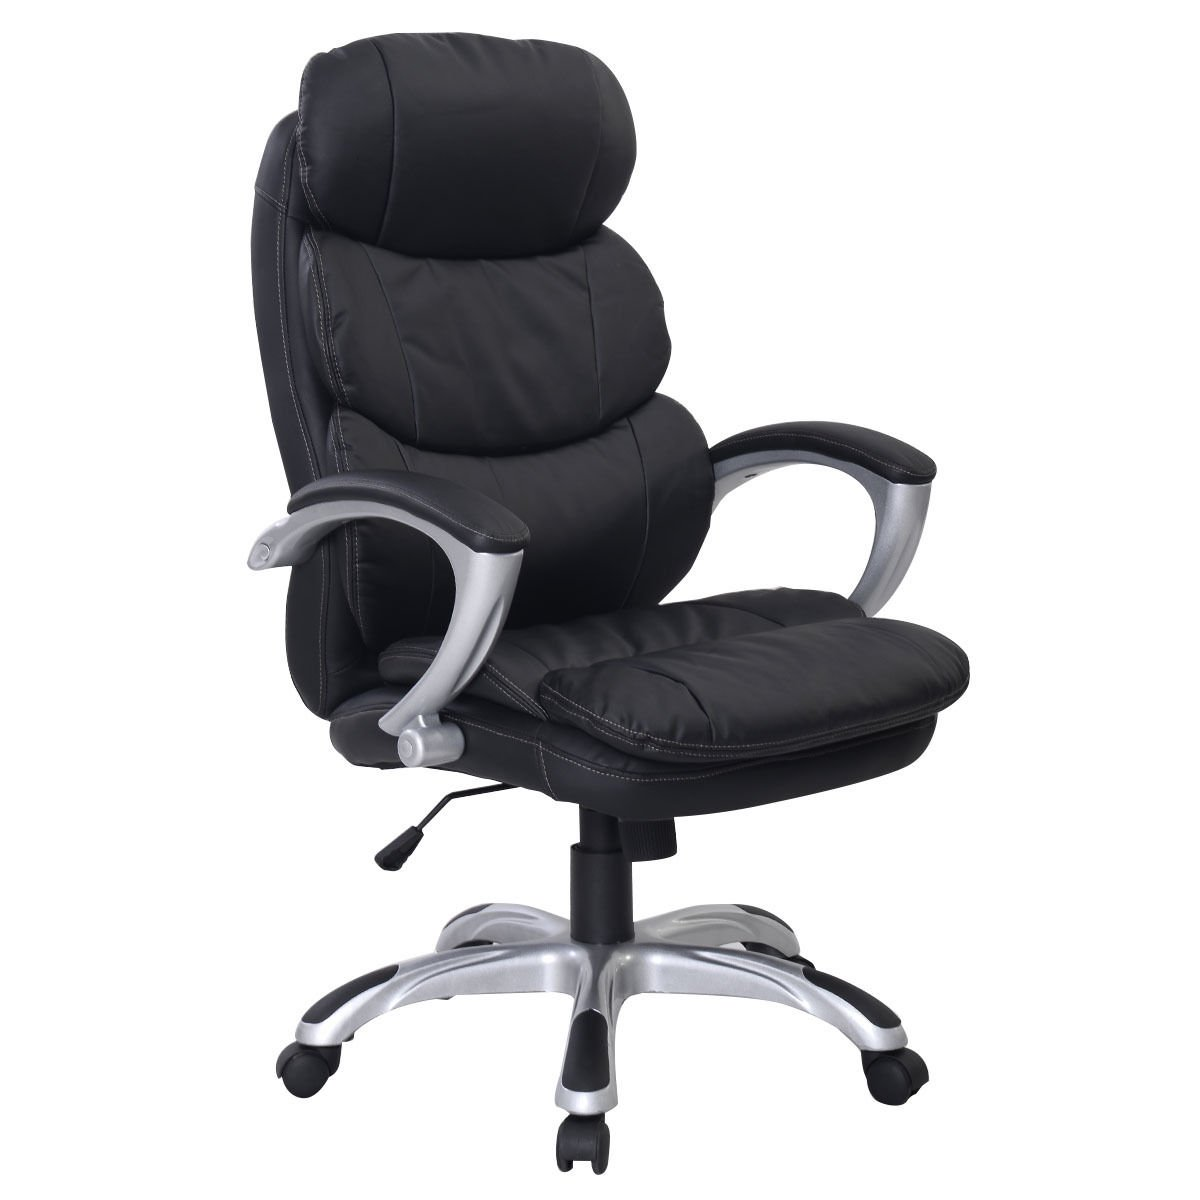 ergonomic desk chair uk hanging ace hardware new pu leather high back office executive